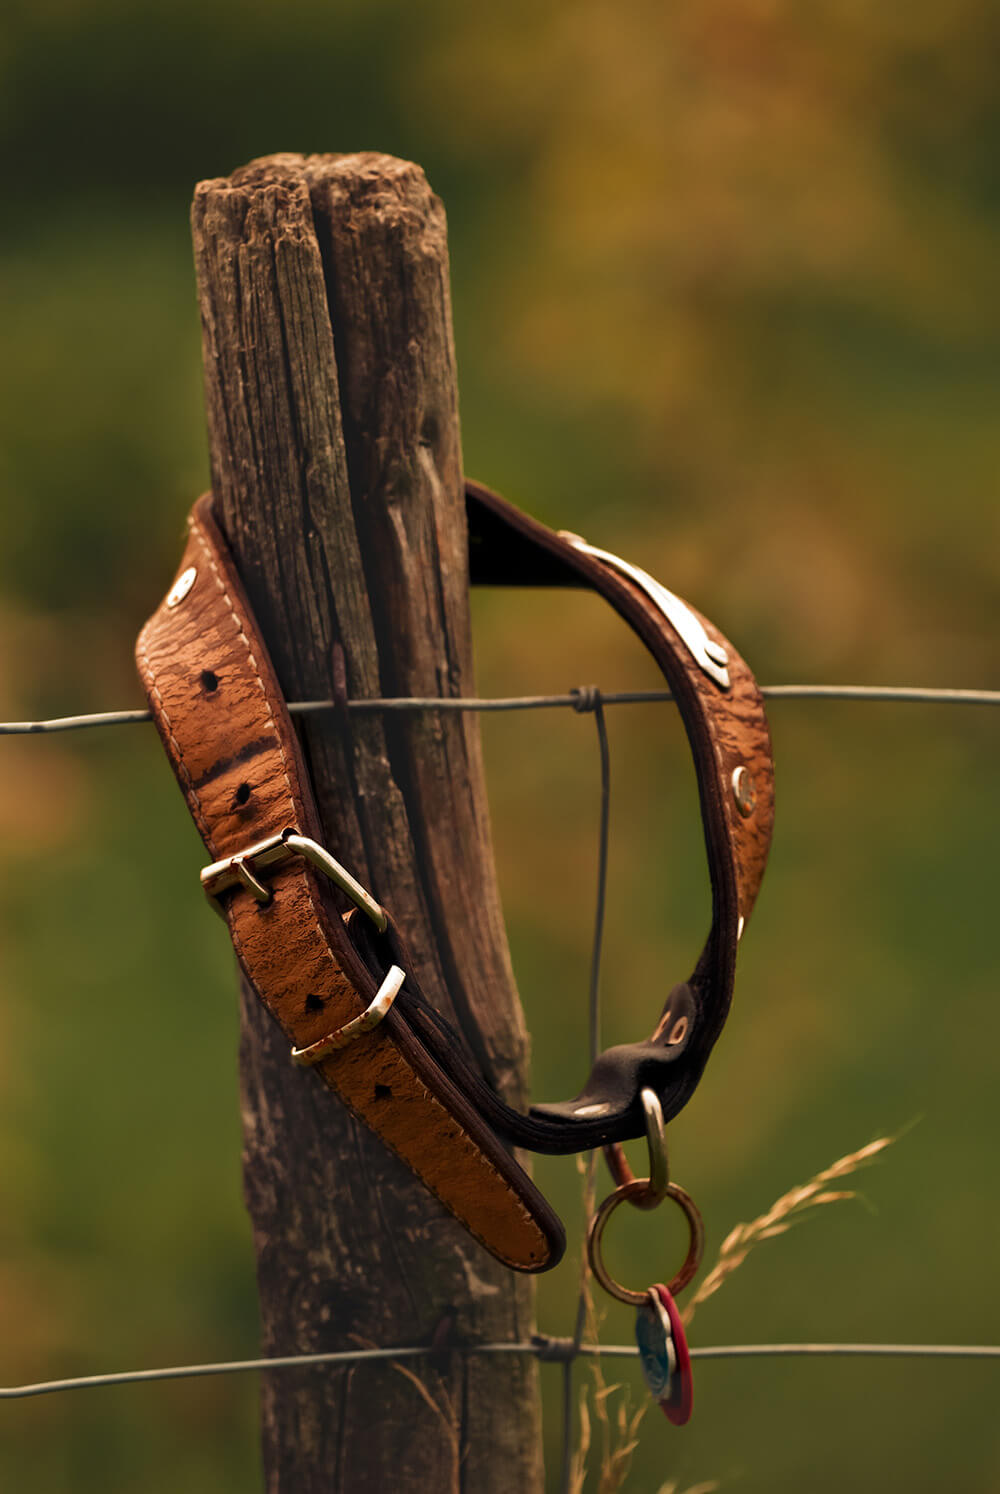 Dog collar on wire fence post